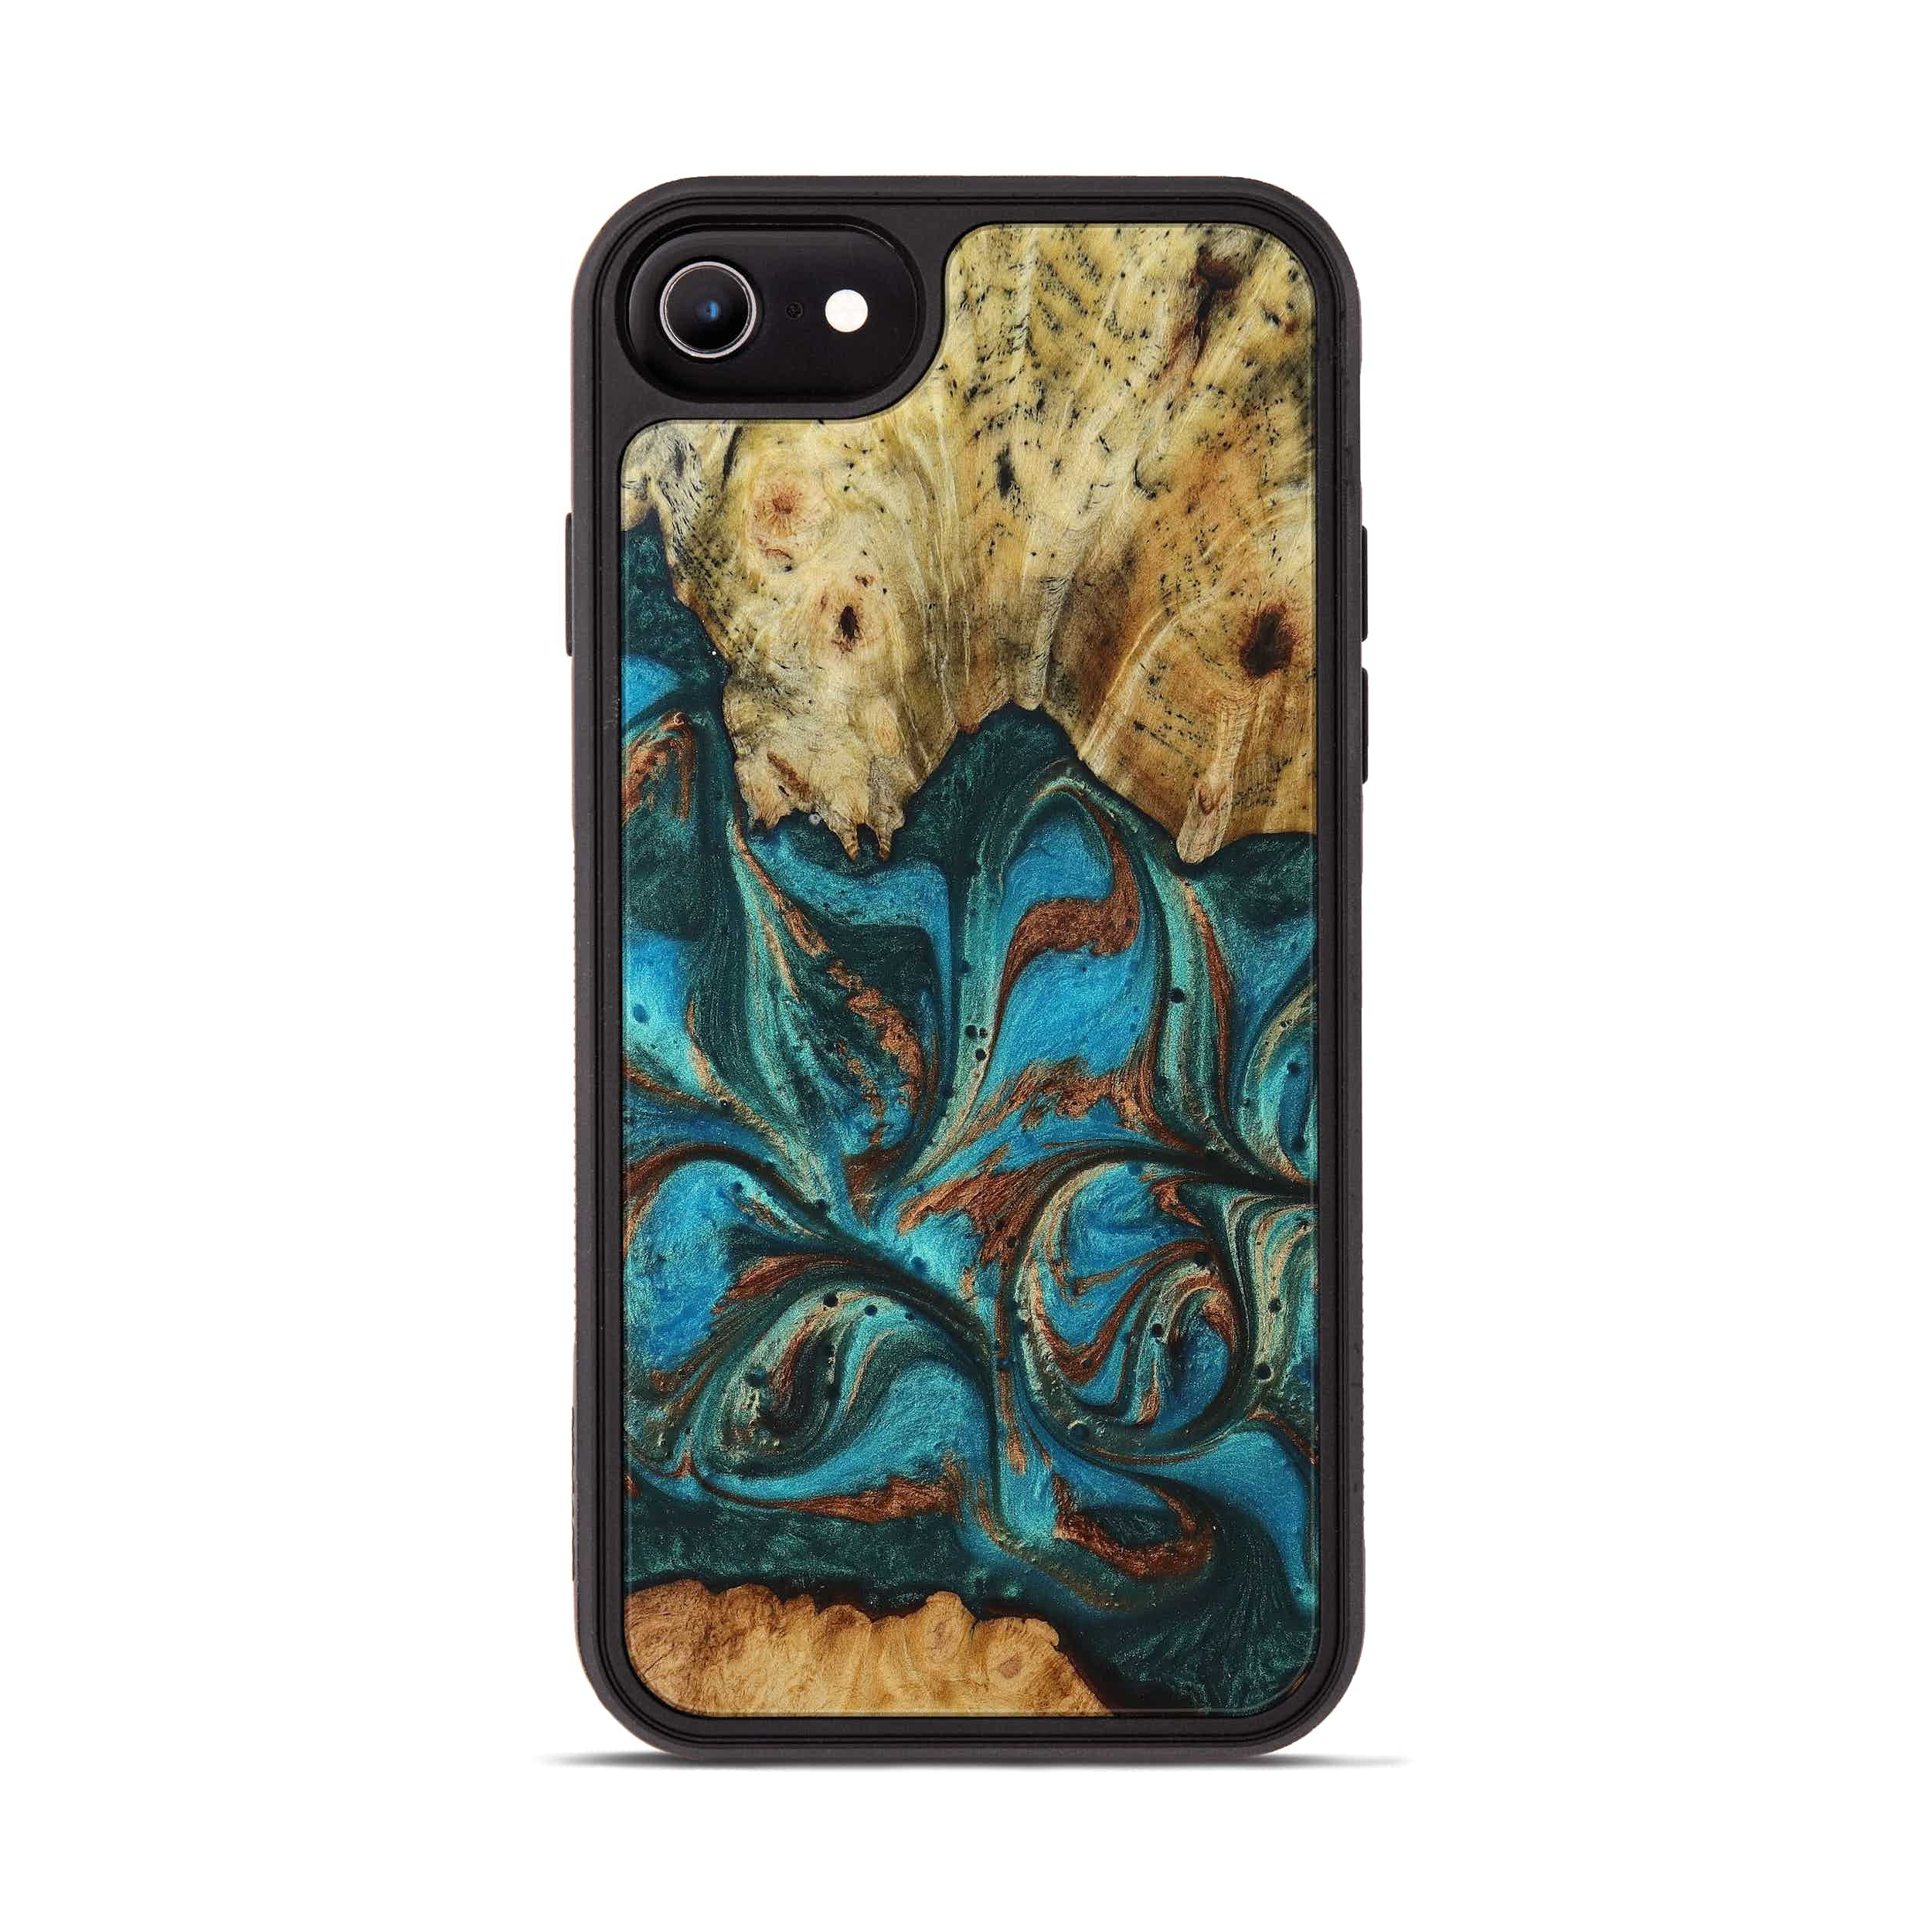 iPhone 8 Wood+Resin Phone Case - Poulos (Teal & Gold, 394382)